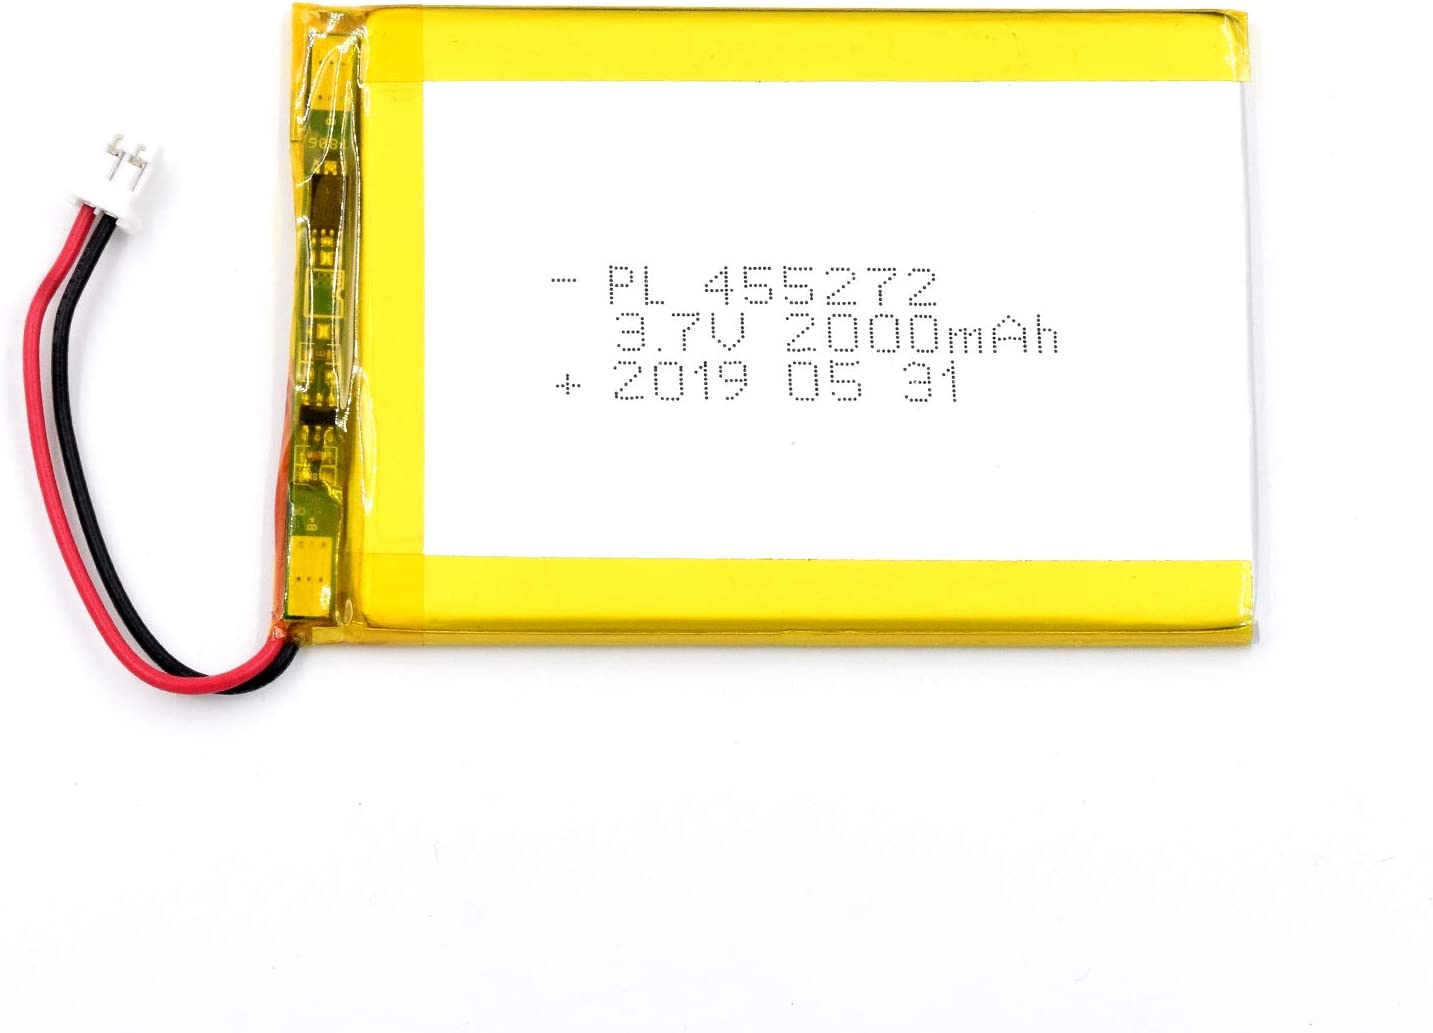 AKZYTUE 3.7V 2000mAh 455272 Lipo Battery Rechargeable Lithium Polymer ion Battery Pack with JST Connector